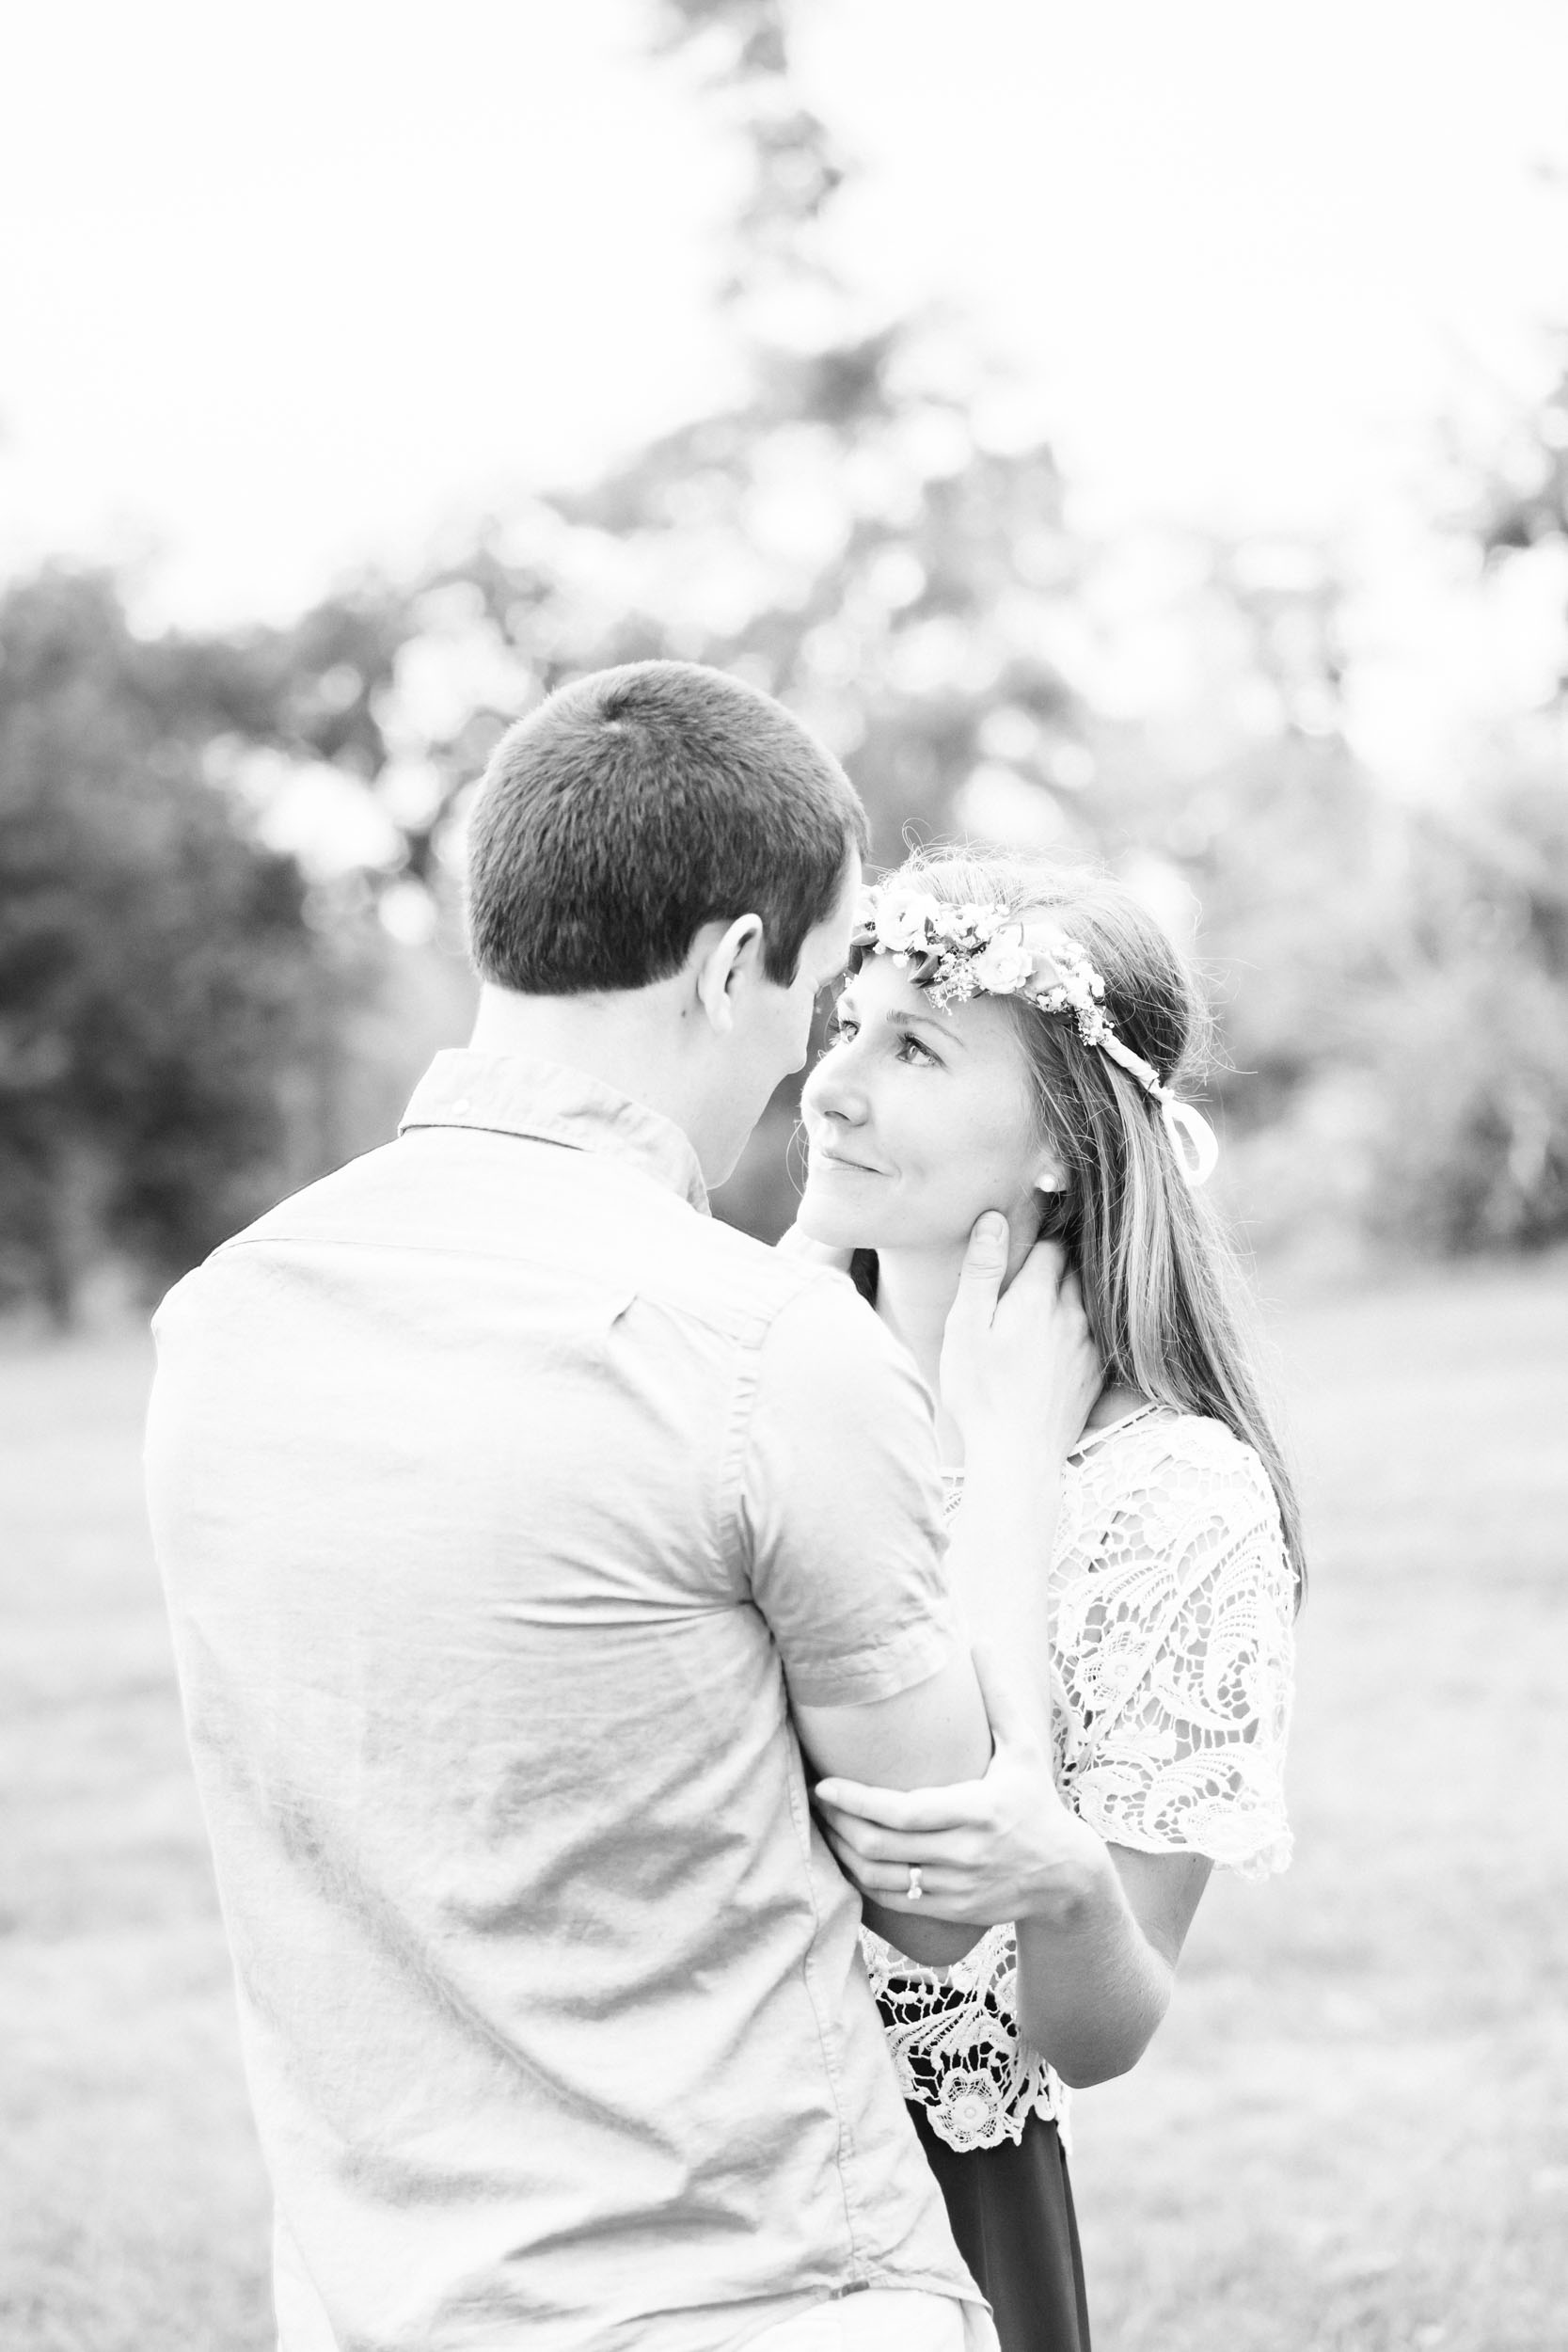 Cassie Schott Photography_Houston and Chicago Portrait Photographer_Engagement Sessions and Anniversary Sessions_34.jpg